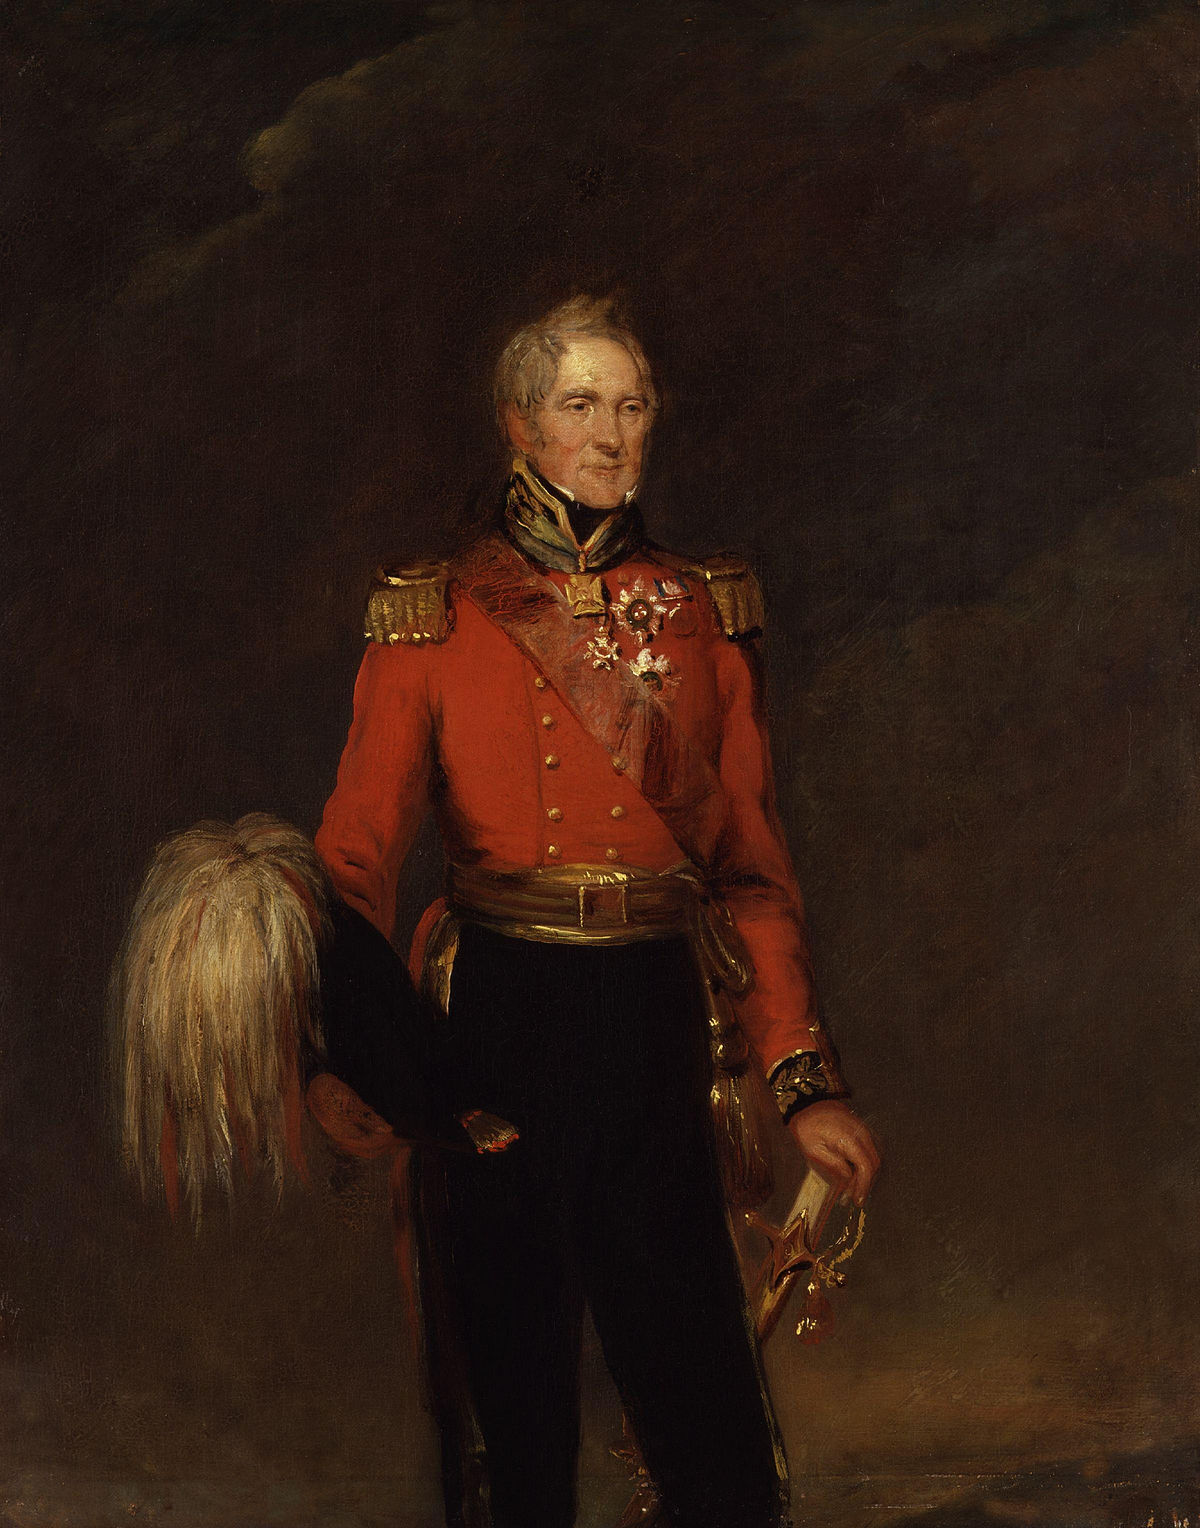 a biography of sir john ross Ross, sir john (1777-1856), naval officer and arctic explorer, born on 24 june 1777 at the manse, soulseat loch, inch, near stranraer, scotland, was the fourth of.